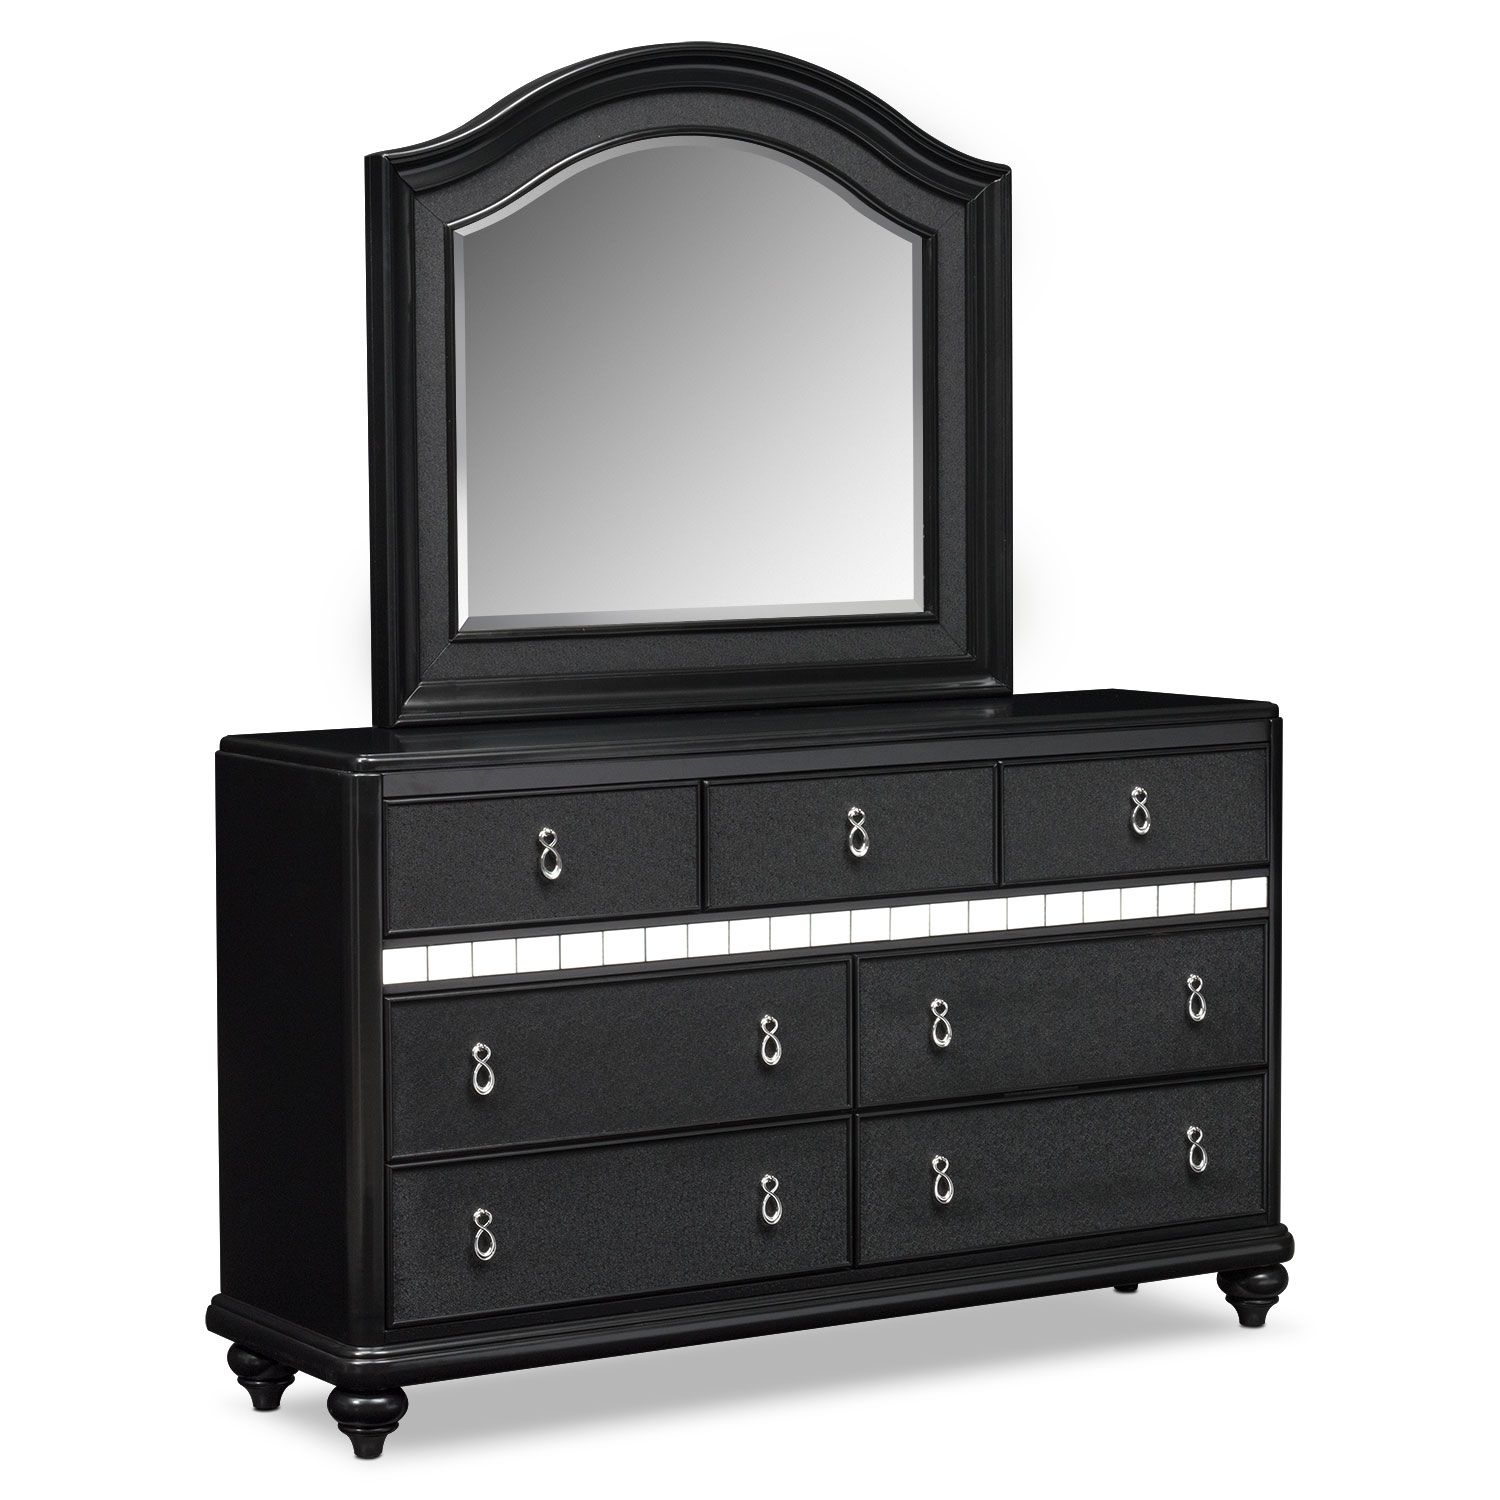 Bedroom Furniture - Serena Dresser and Mirror - Onyx